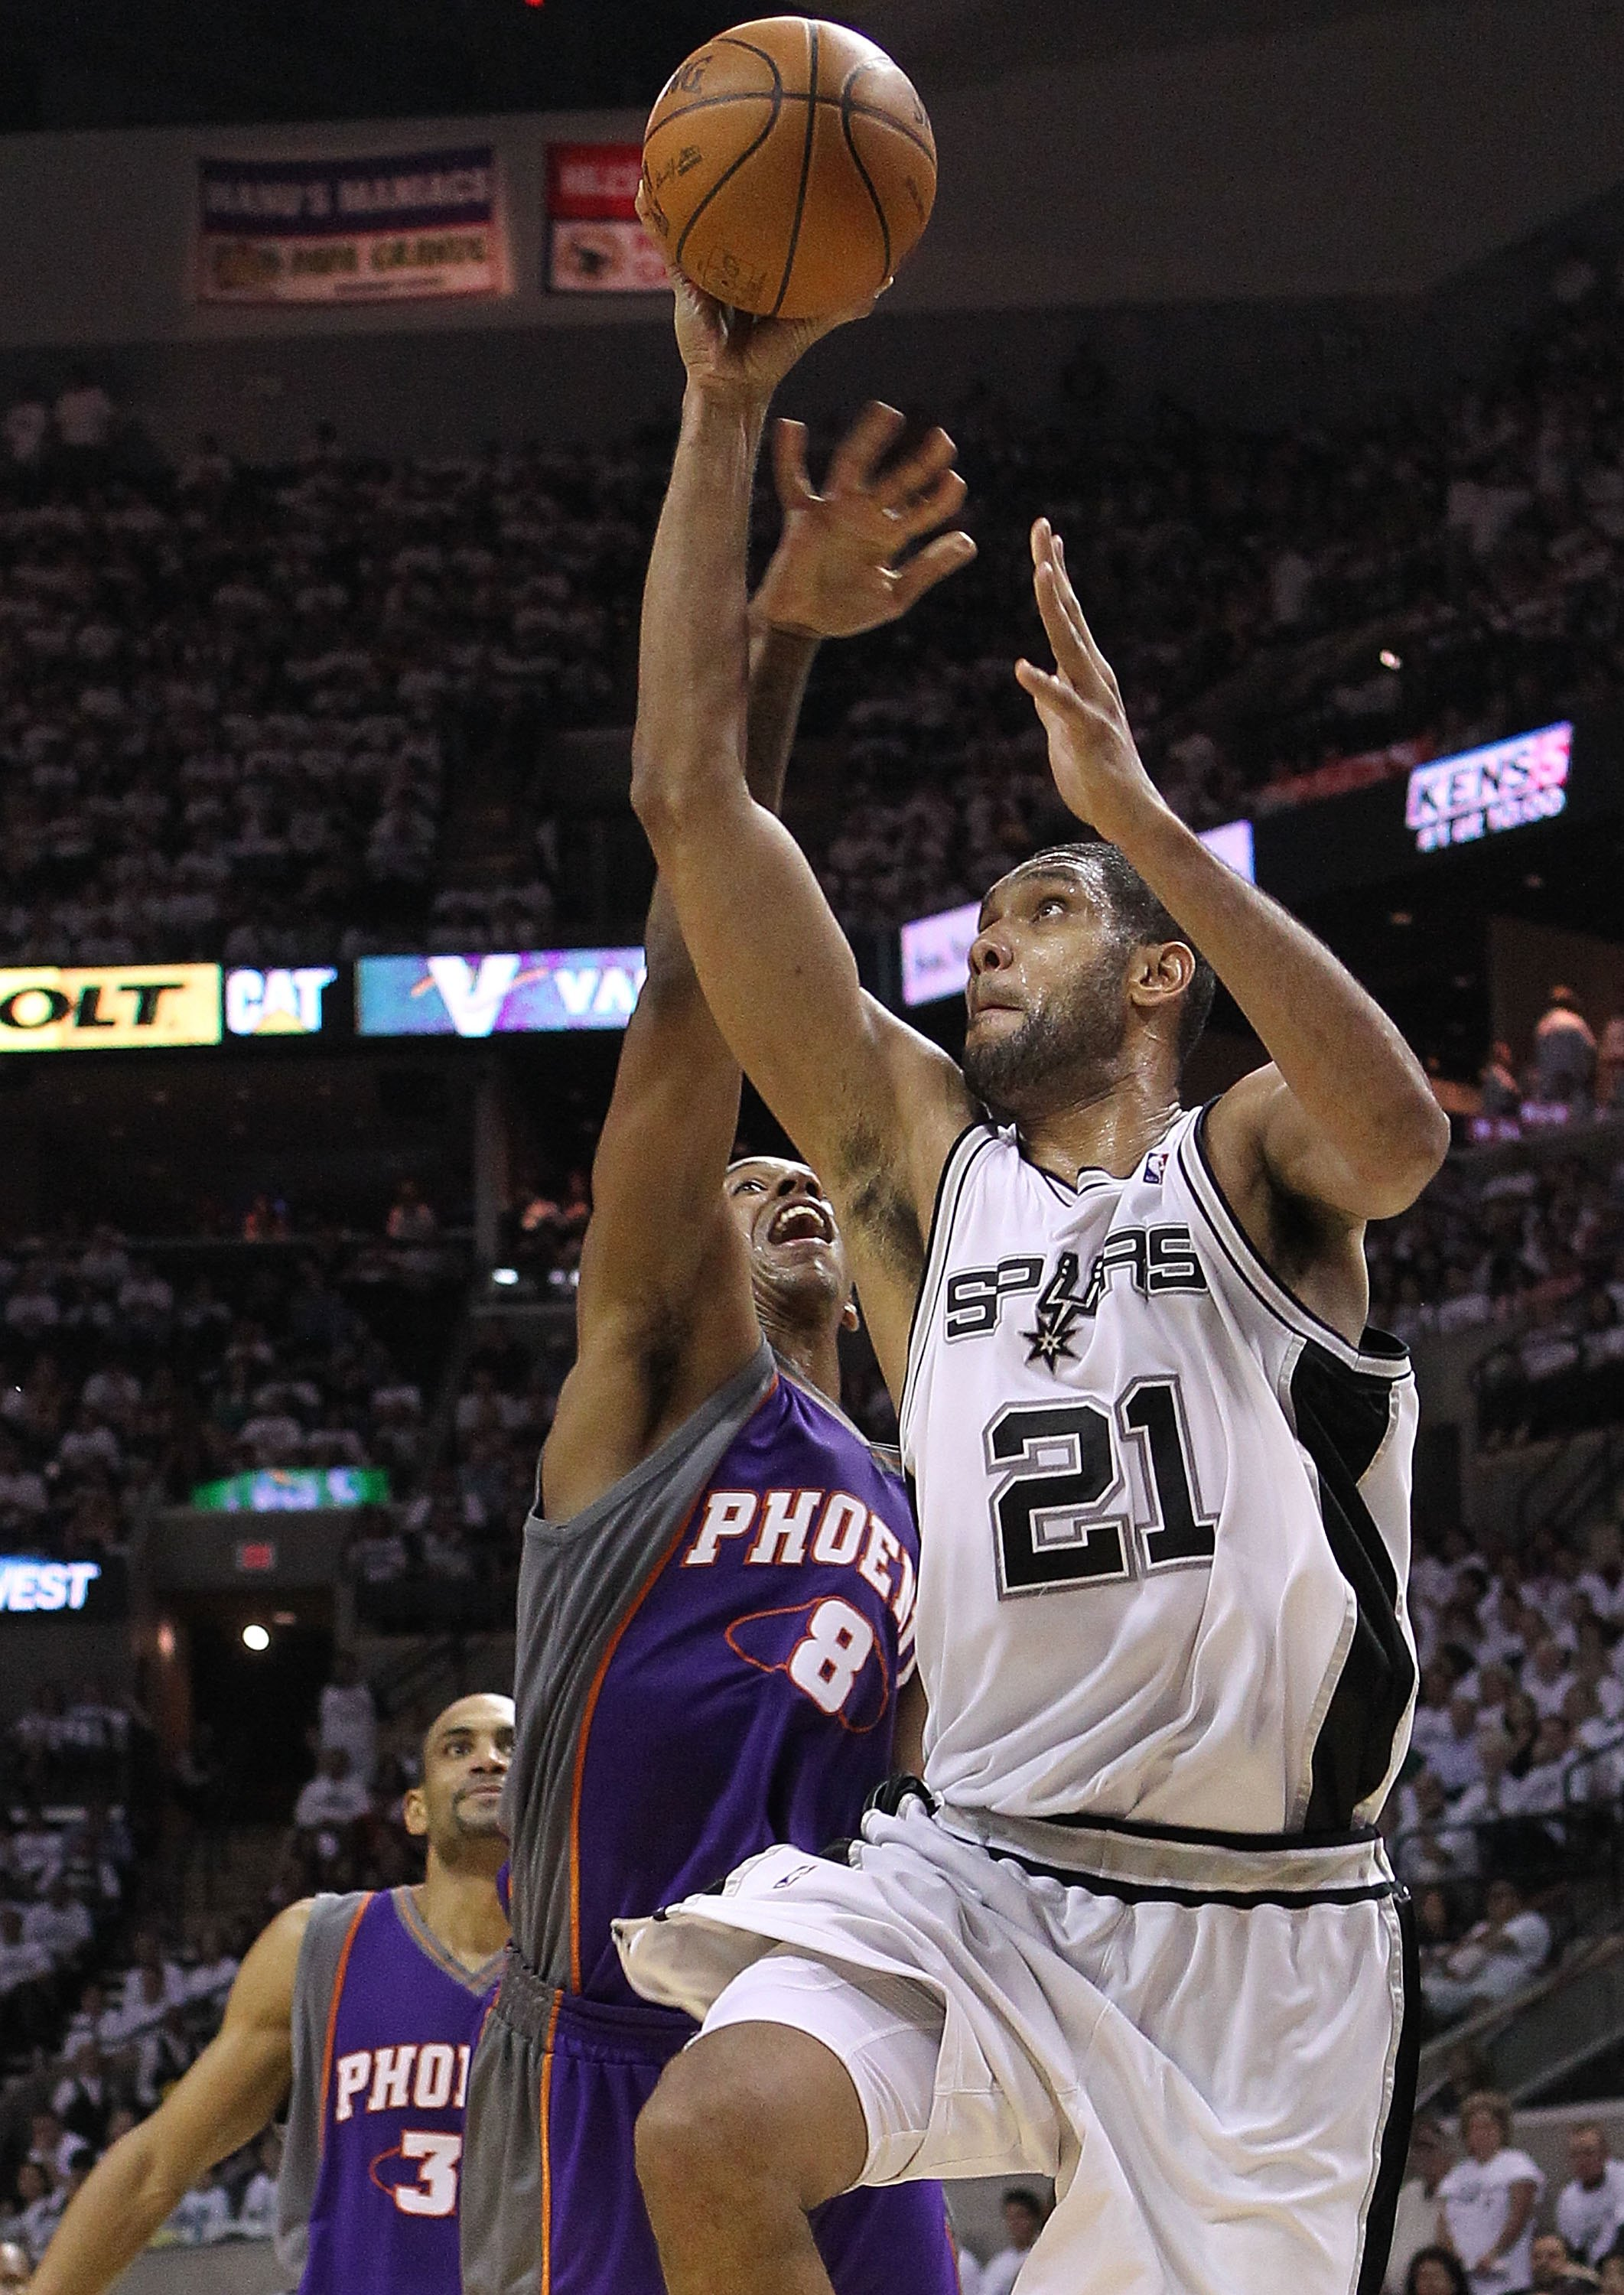 SAN ANTONIO - MAY 07:  Forward Tim Duncan #21 of the San Antonio Spurs takes a shot against Channing Frye #8 of the Phoenix Suns in Game Three of the Western Conference Semifinals during the 2010 NBA Playoffs at AT&T Center on May 7, 2010 in San Antonio,